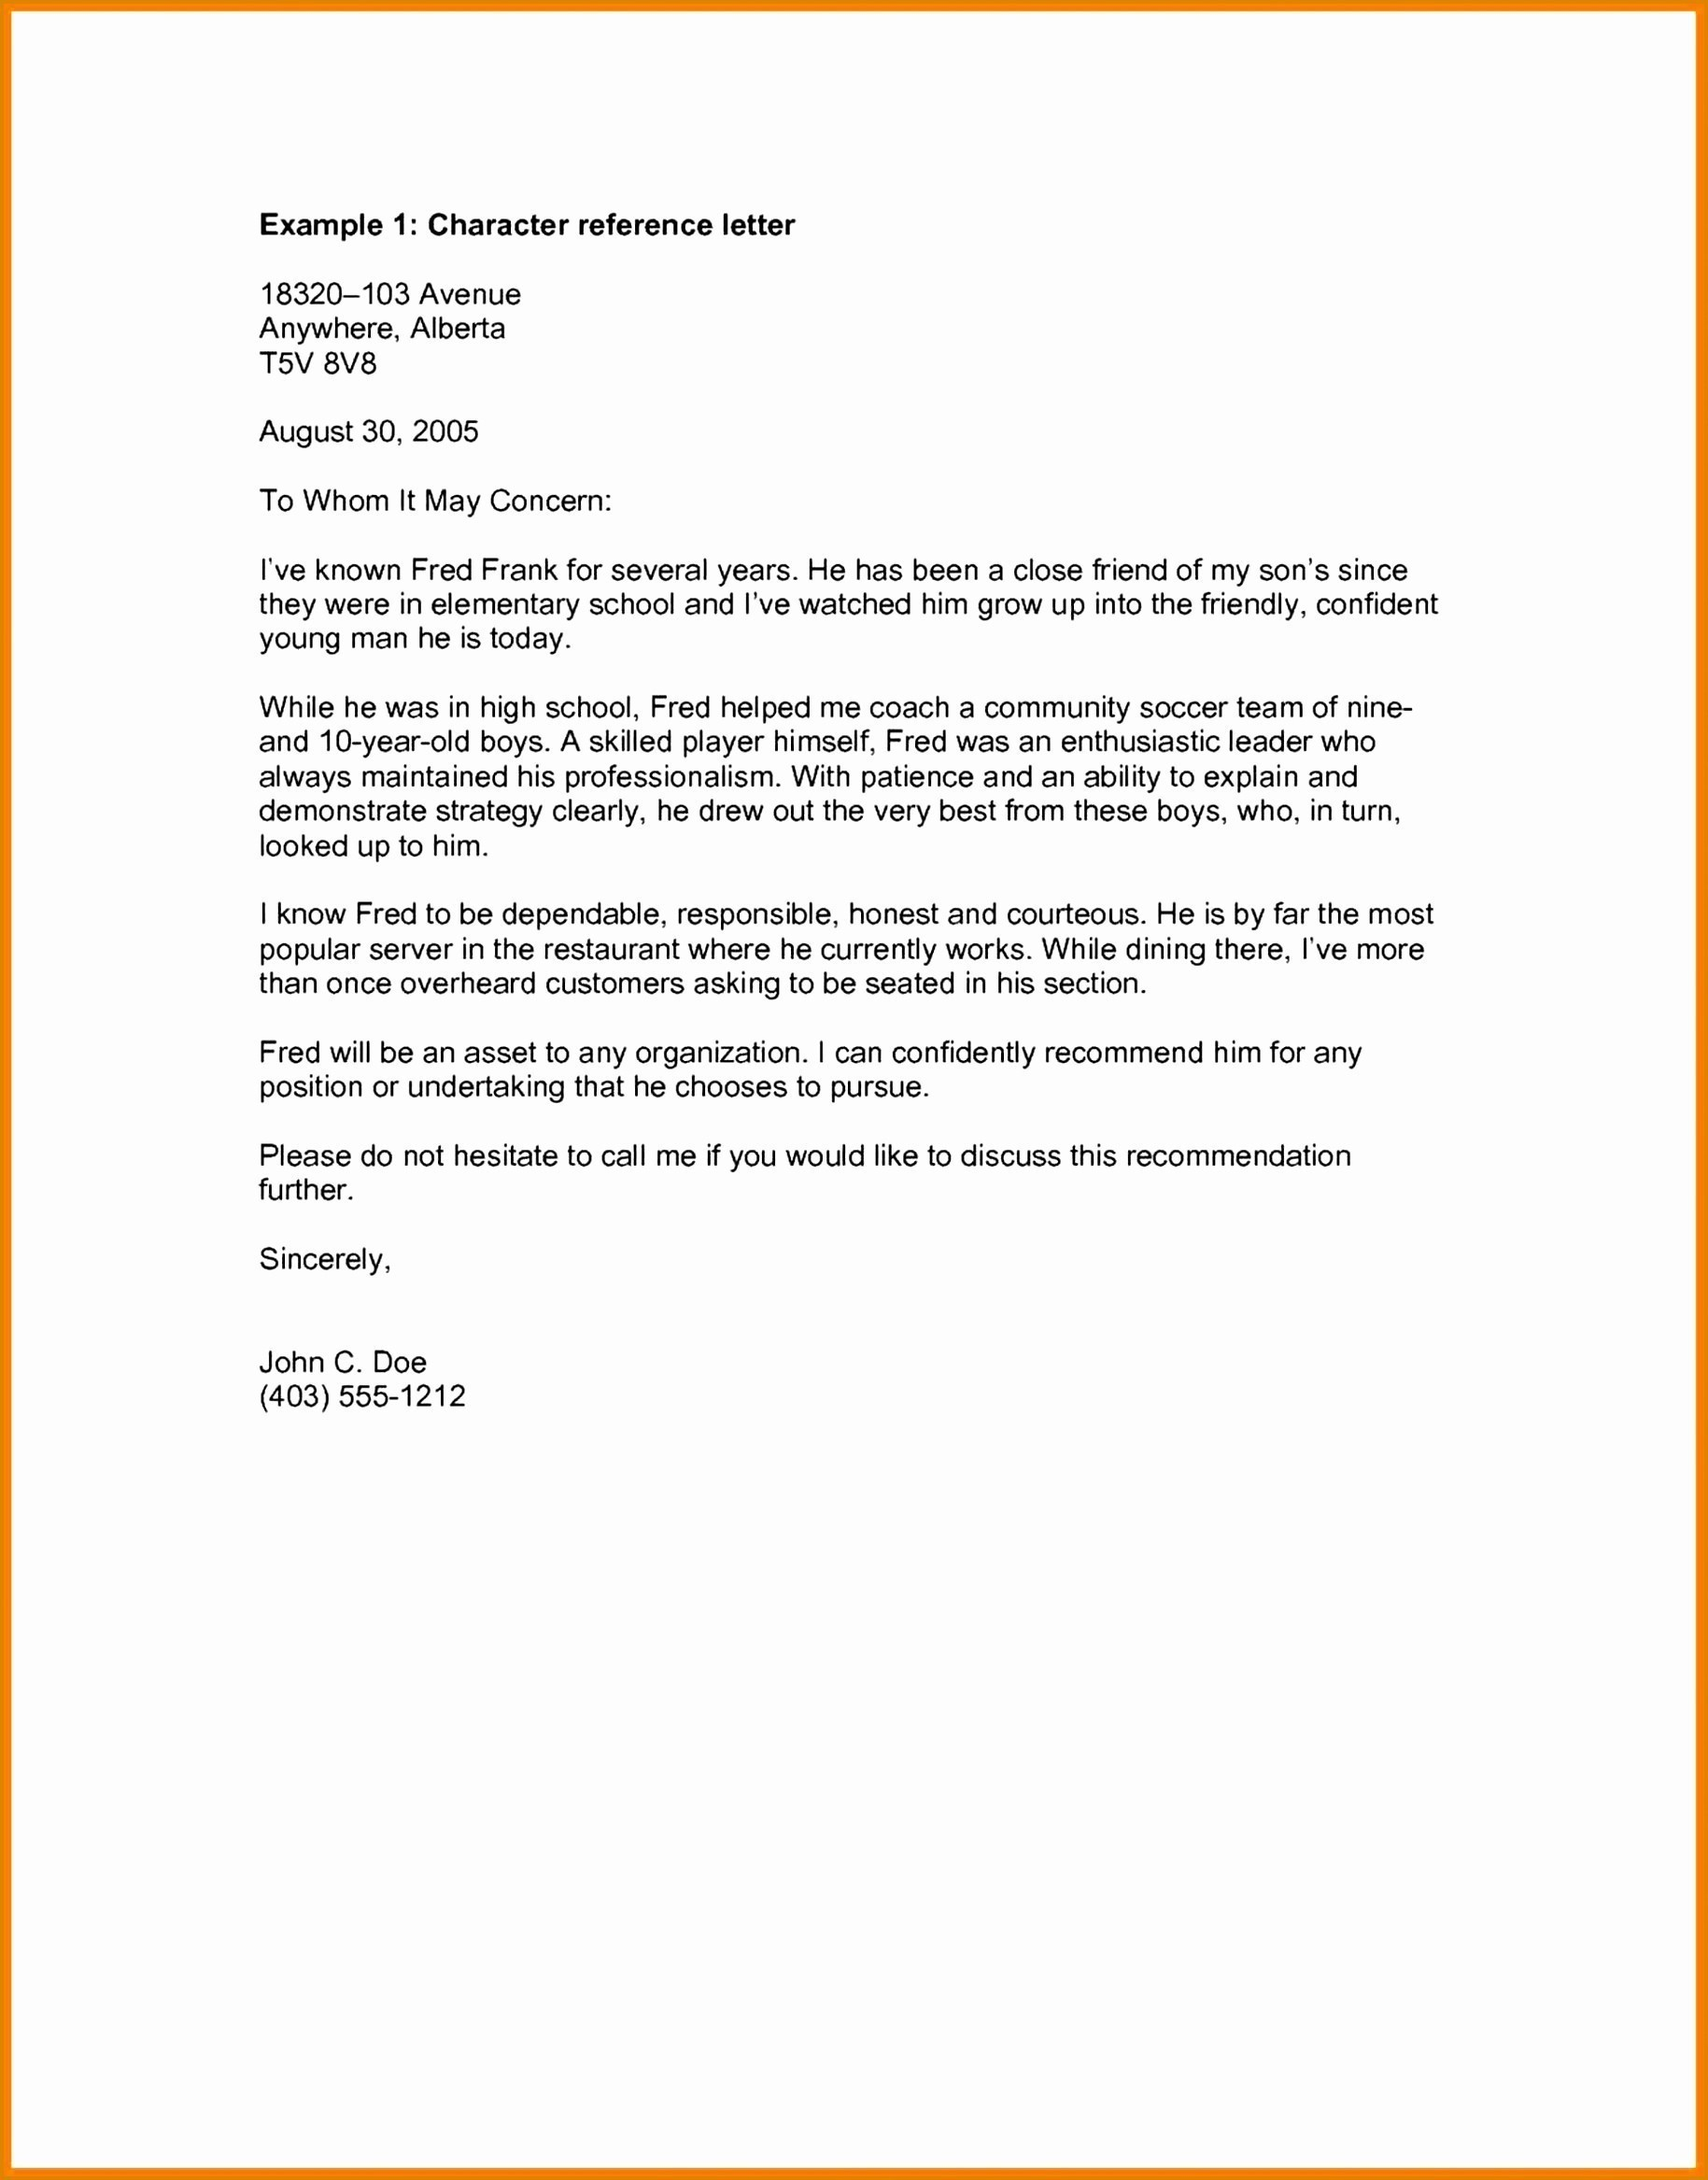 Landlord reference letter template samples letter templates plaint letter template refund fresh template references letter of landlord reference letter template samples altavistaventures Gallery